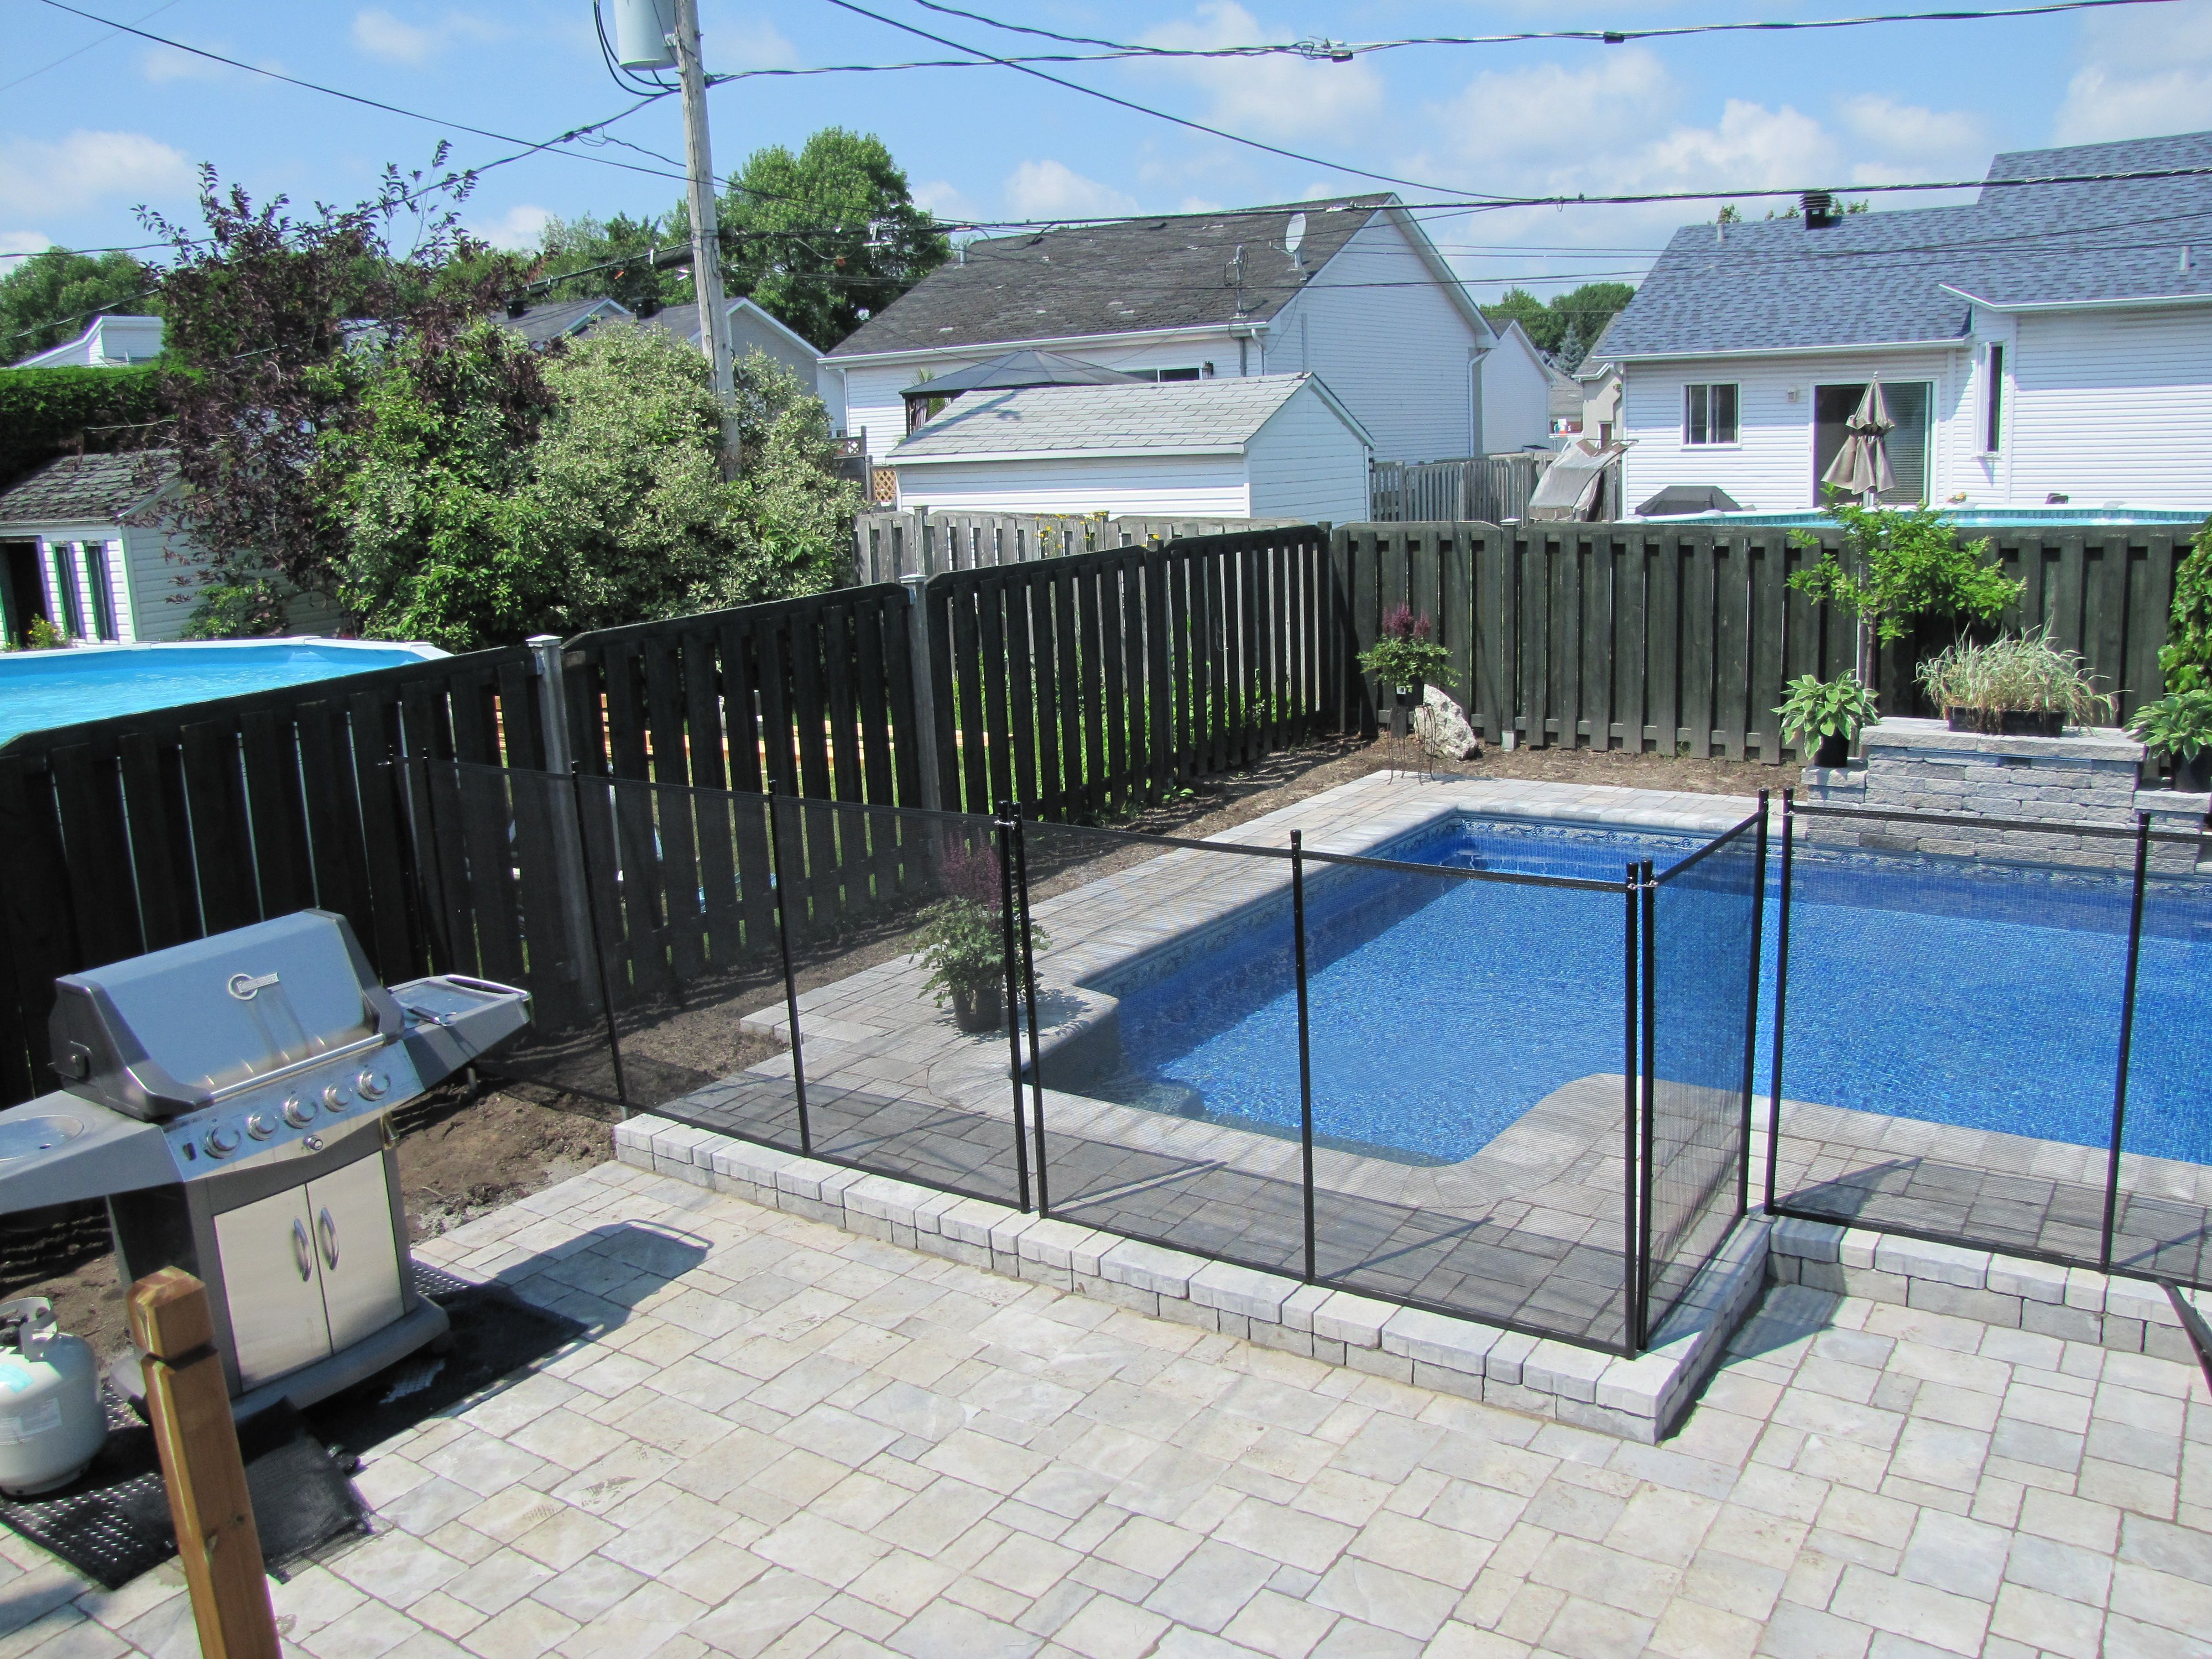 Drowning prevention water safety pool fence child